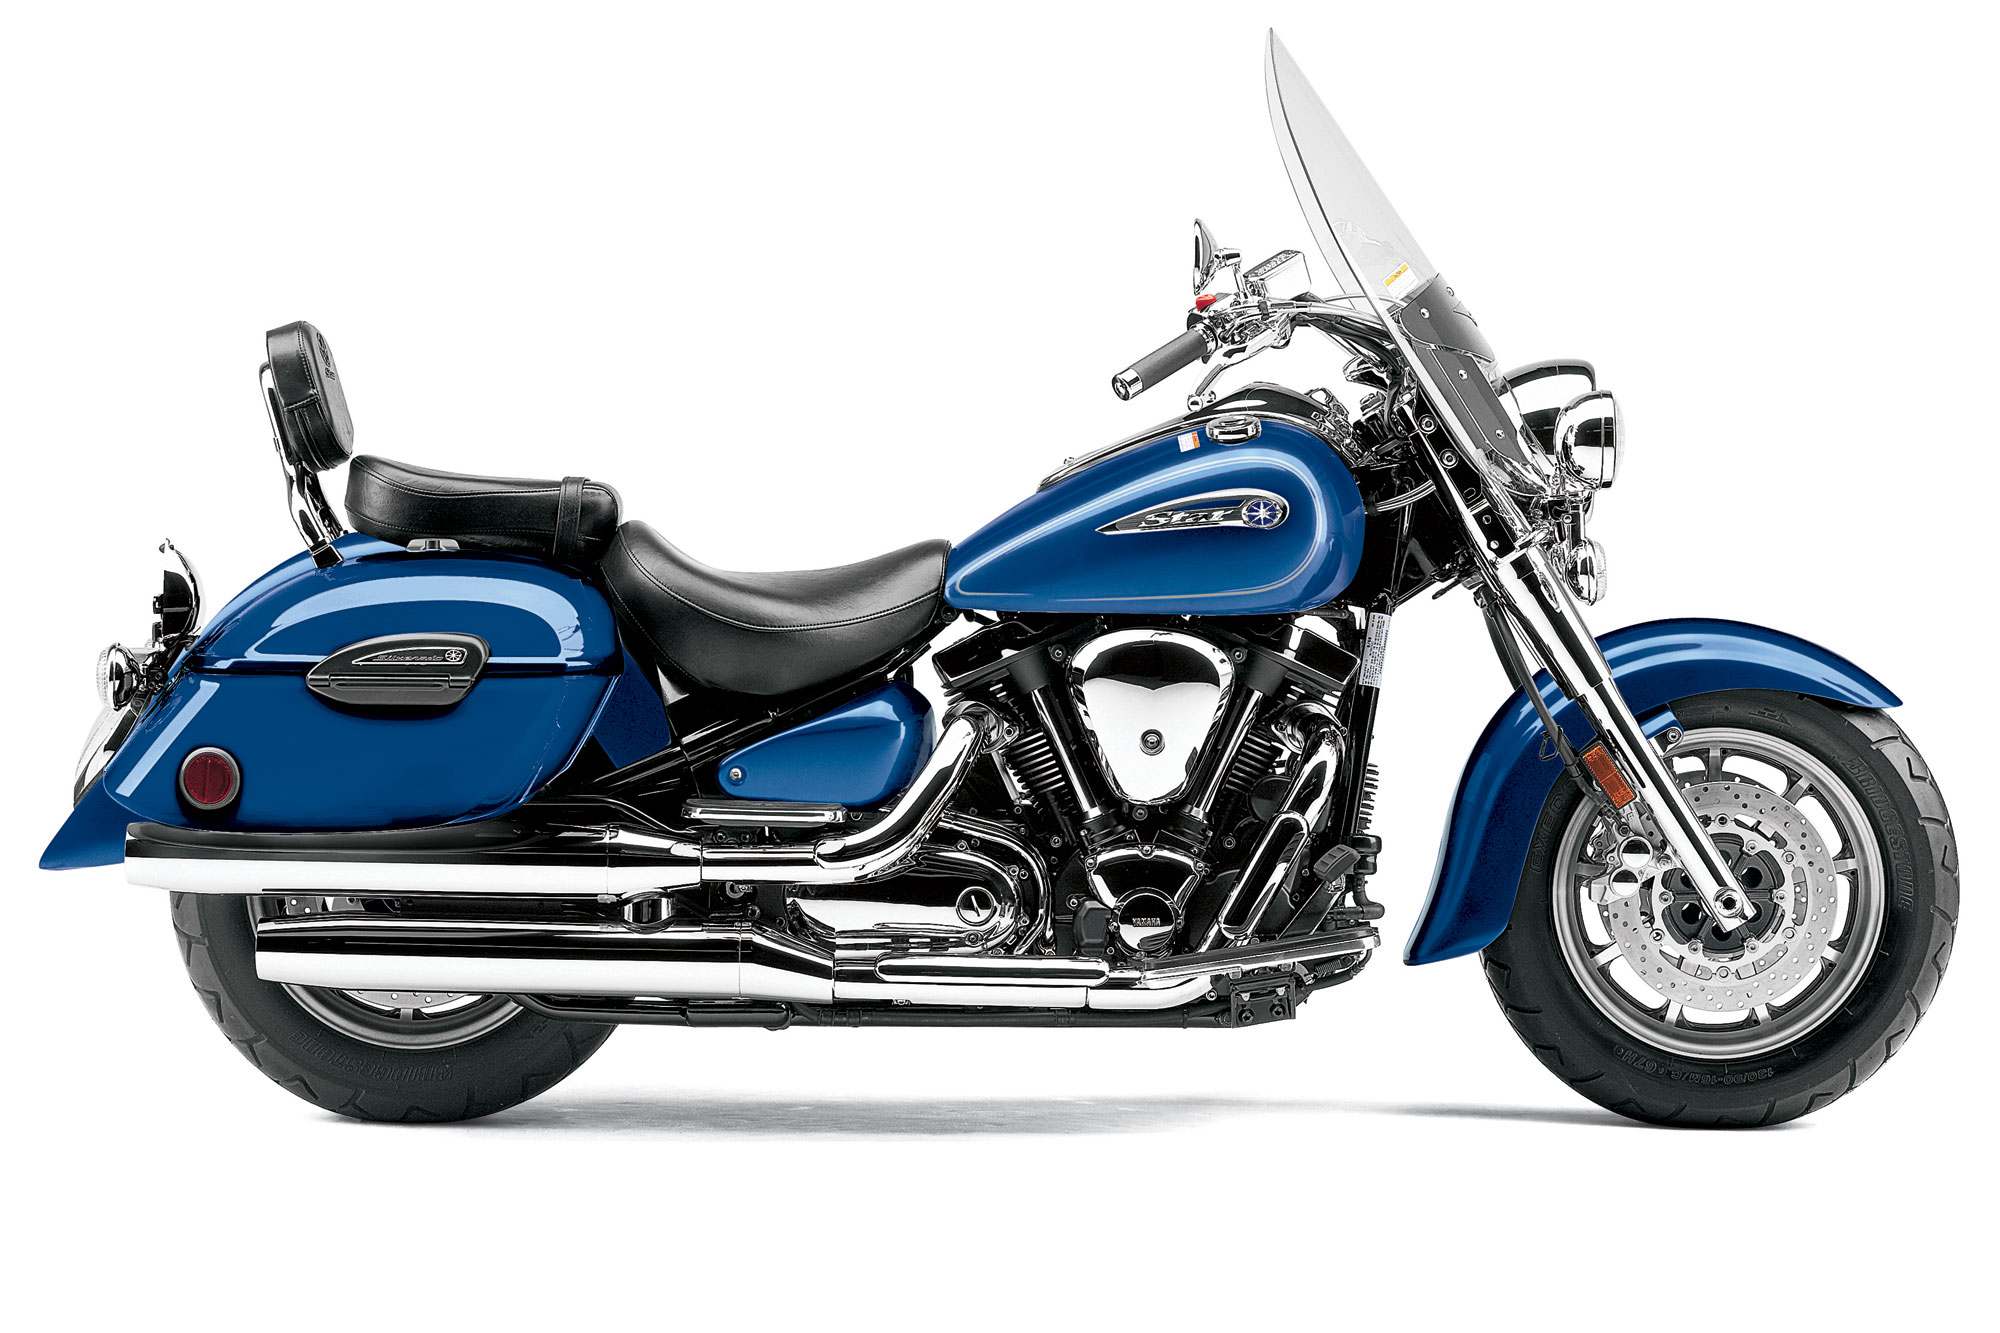 2013 yamaha road star silverado s review for Yamaha road motorcycles